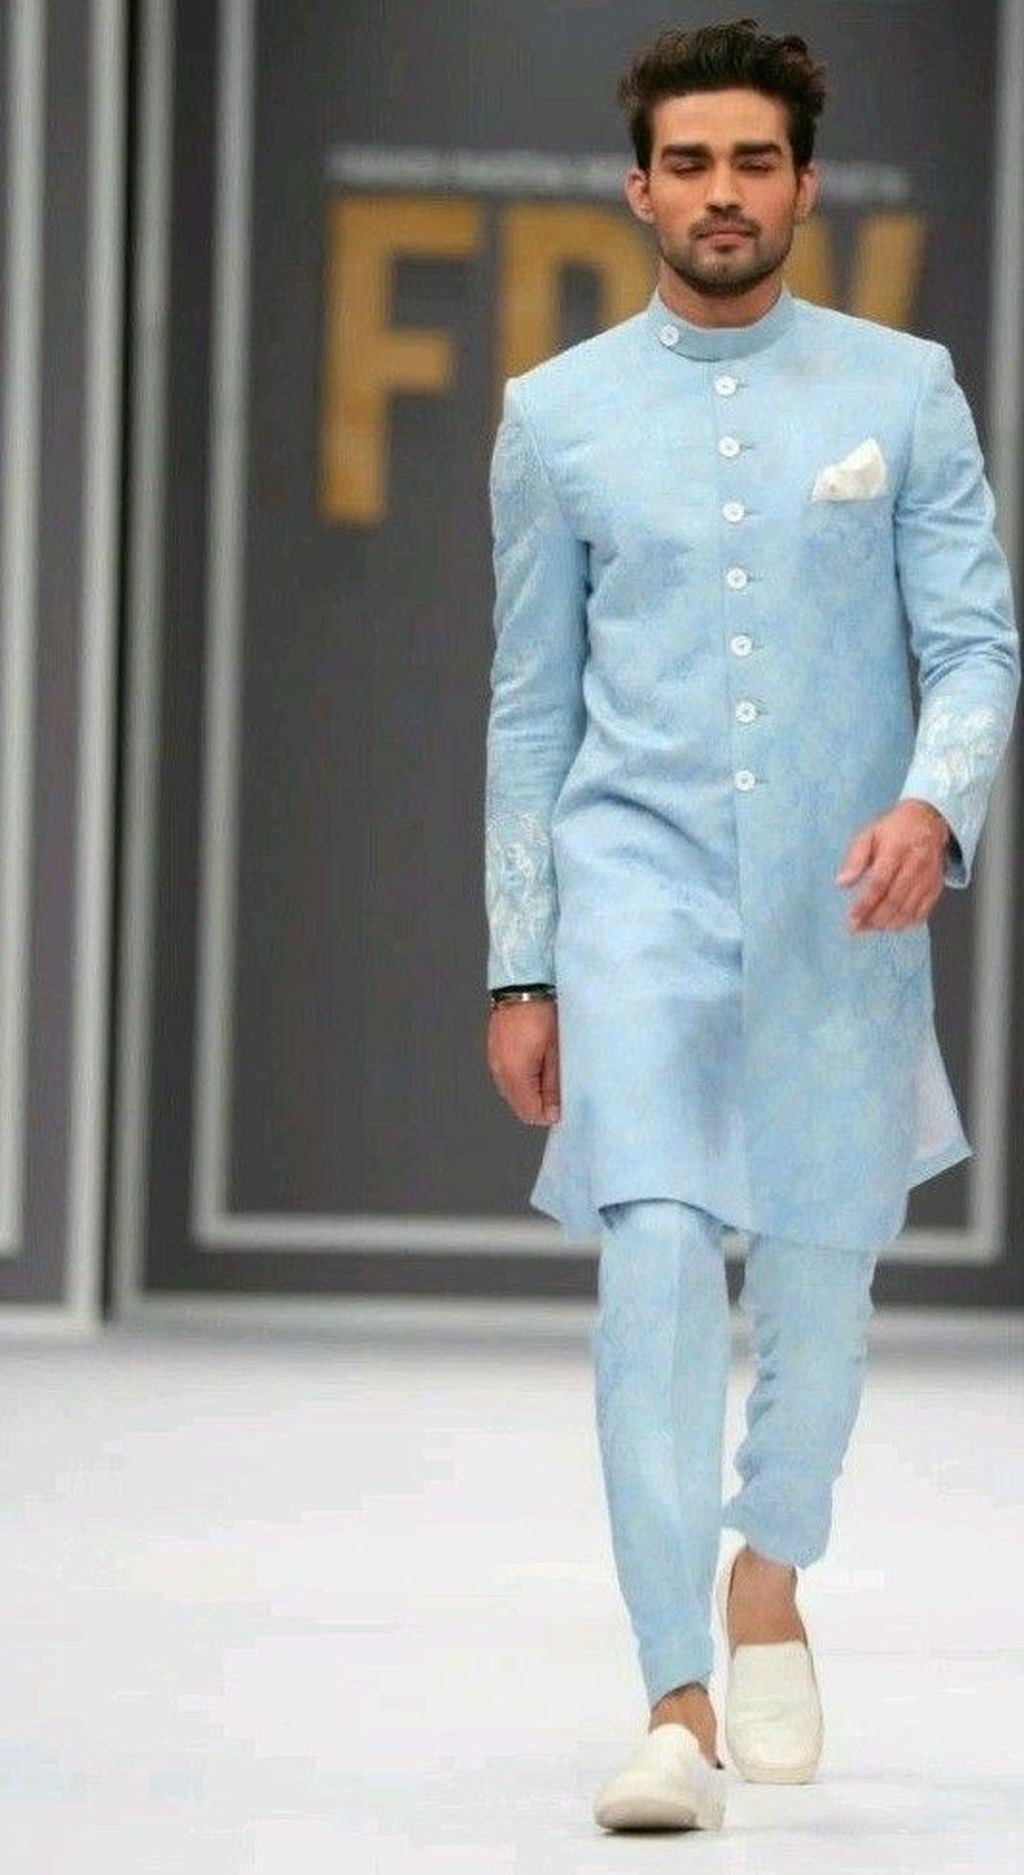 6+ Admirable Outfit Styles For The Groom At Engagement Party To